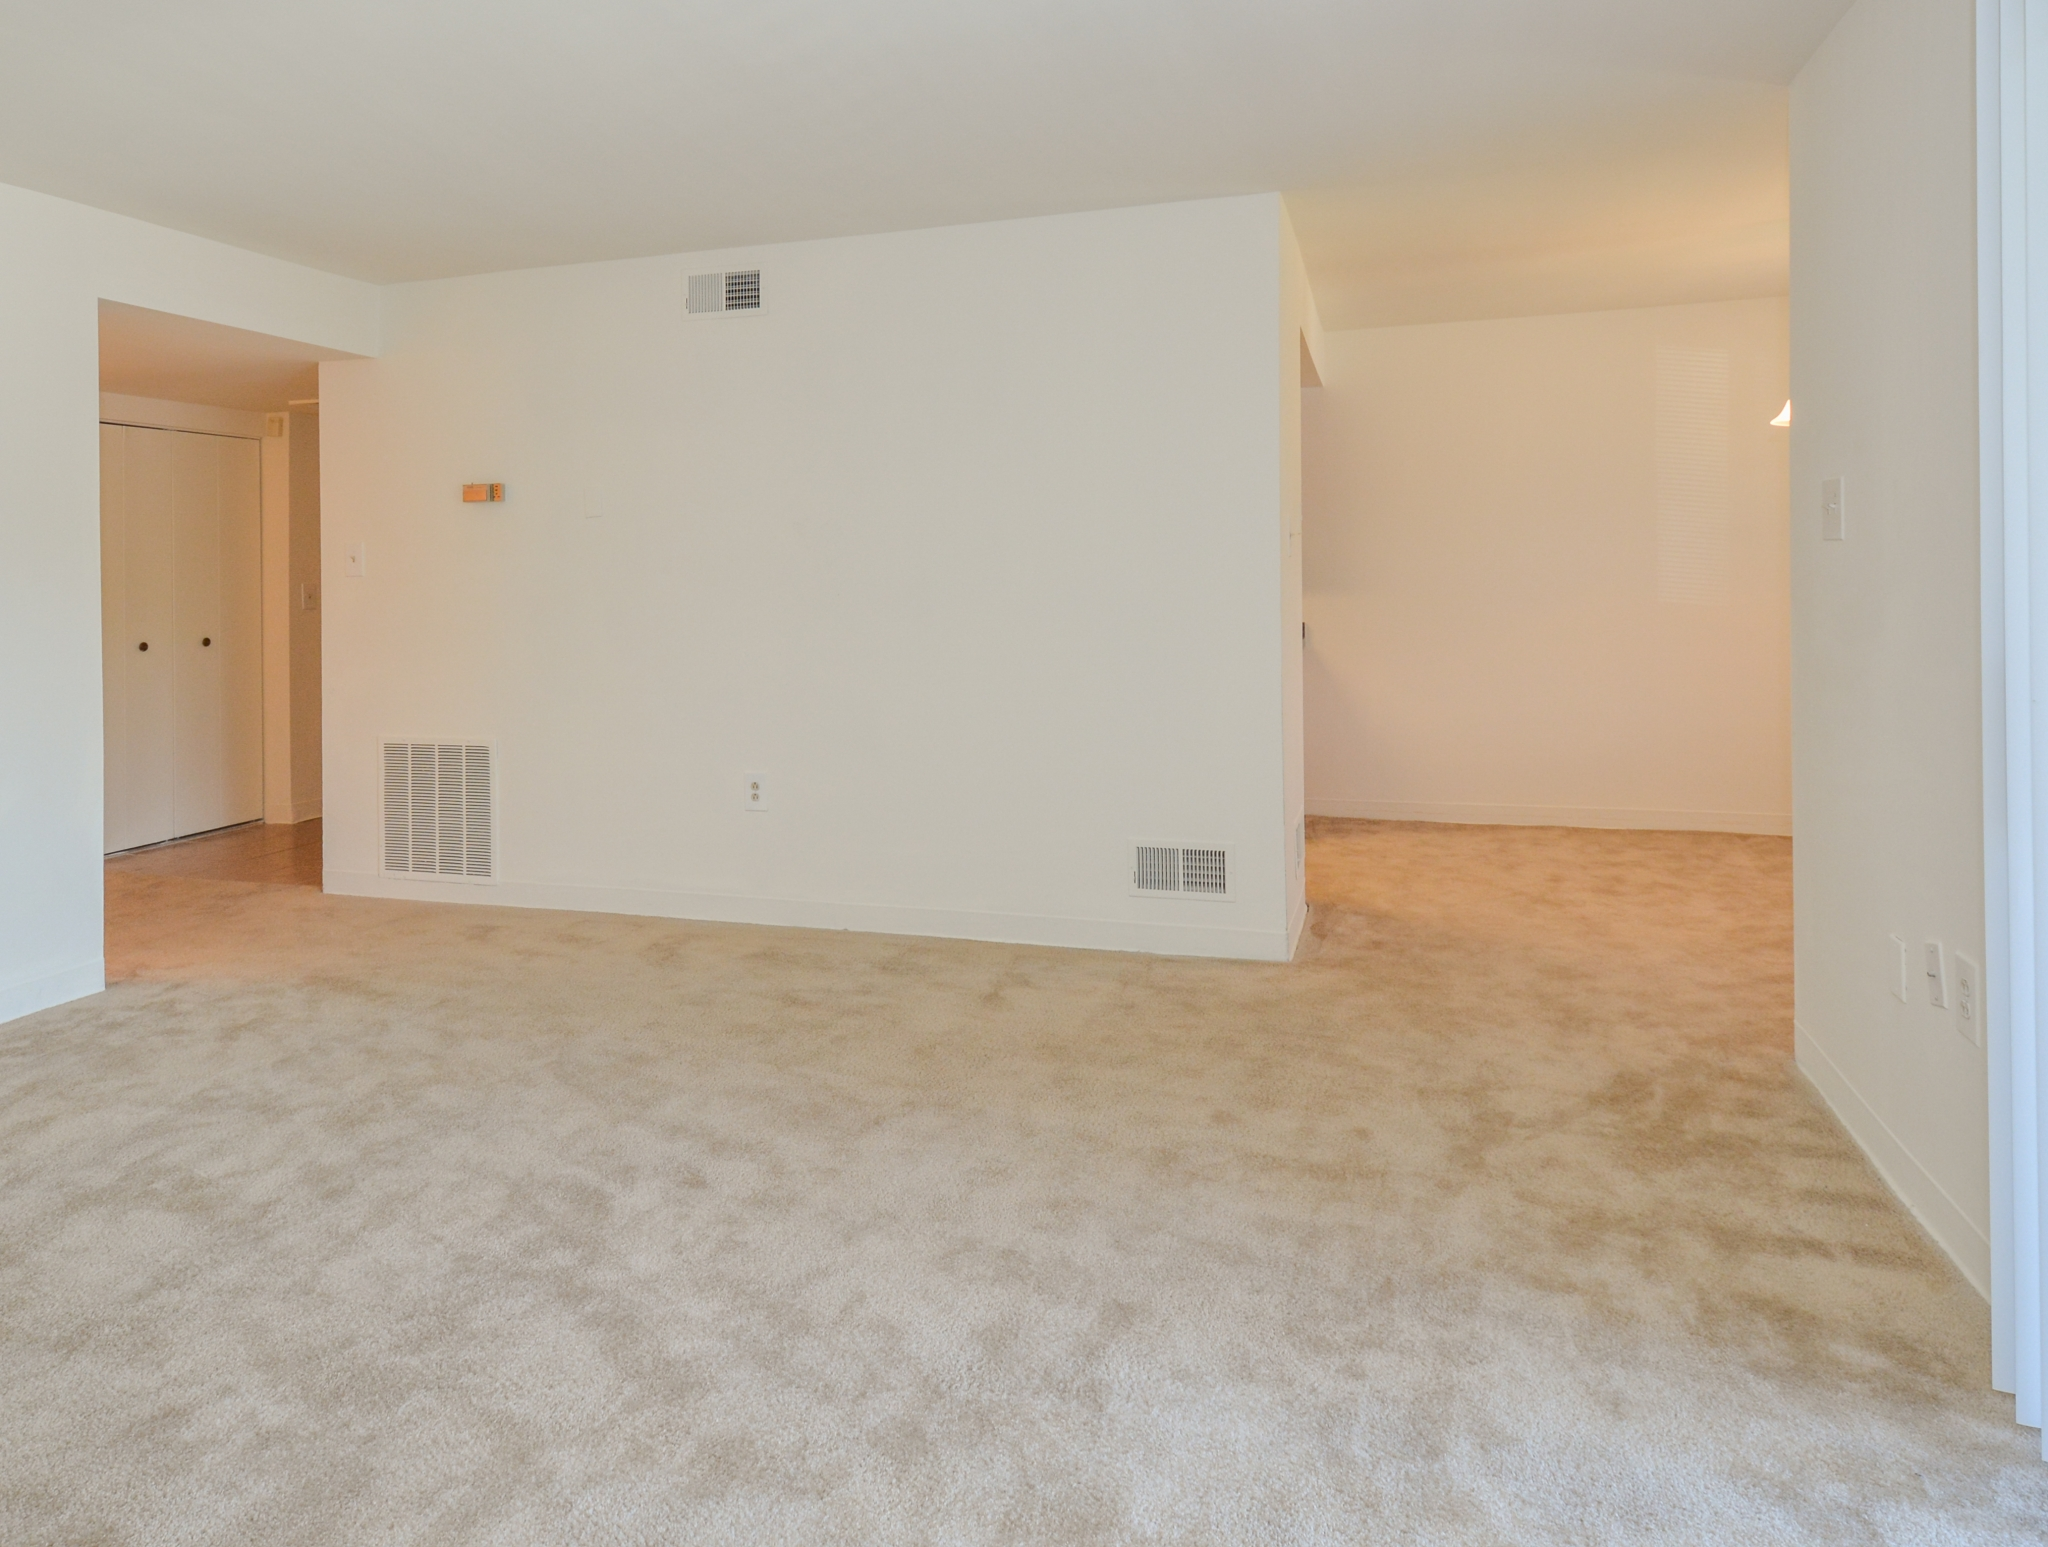 Princeton Orchards Sample Living Room with Beige Carpet | Apartments for Rent in South Brunswick, NJ